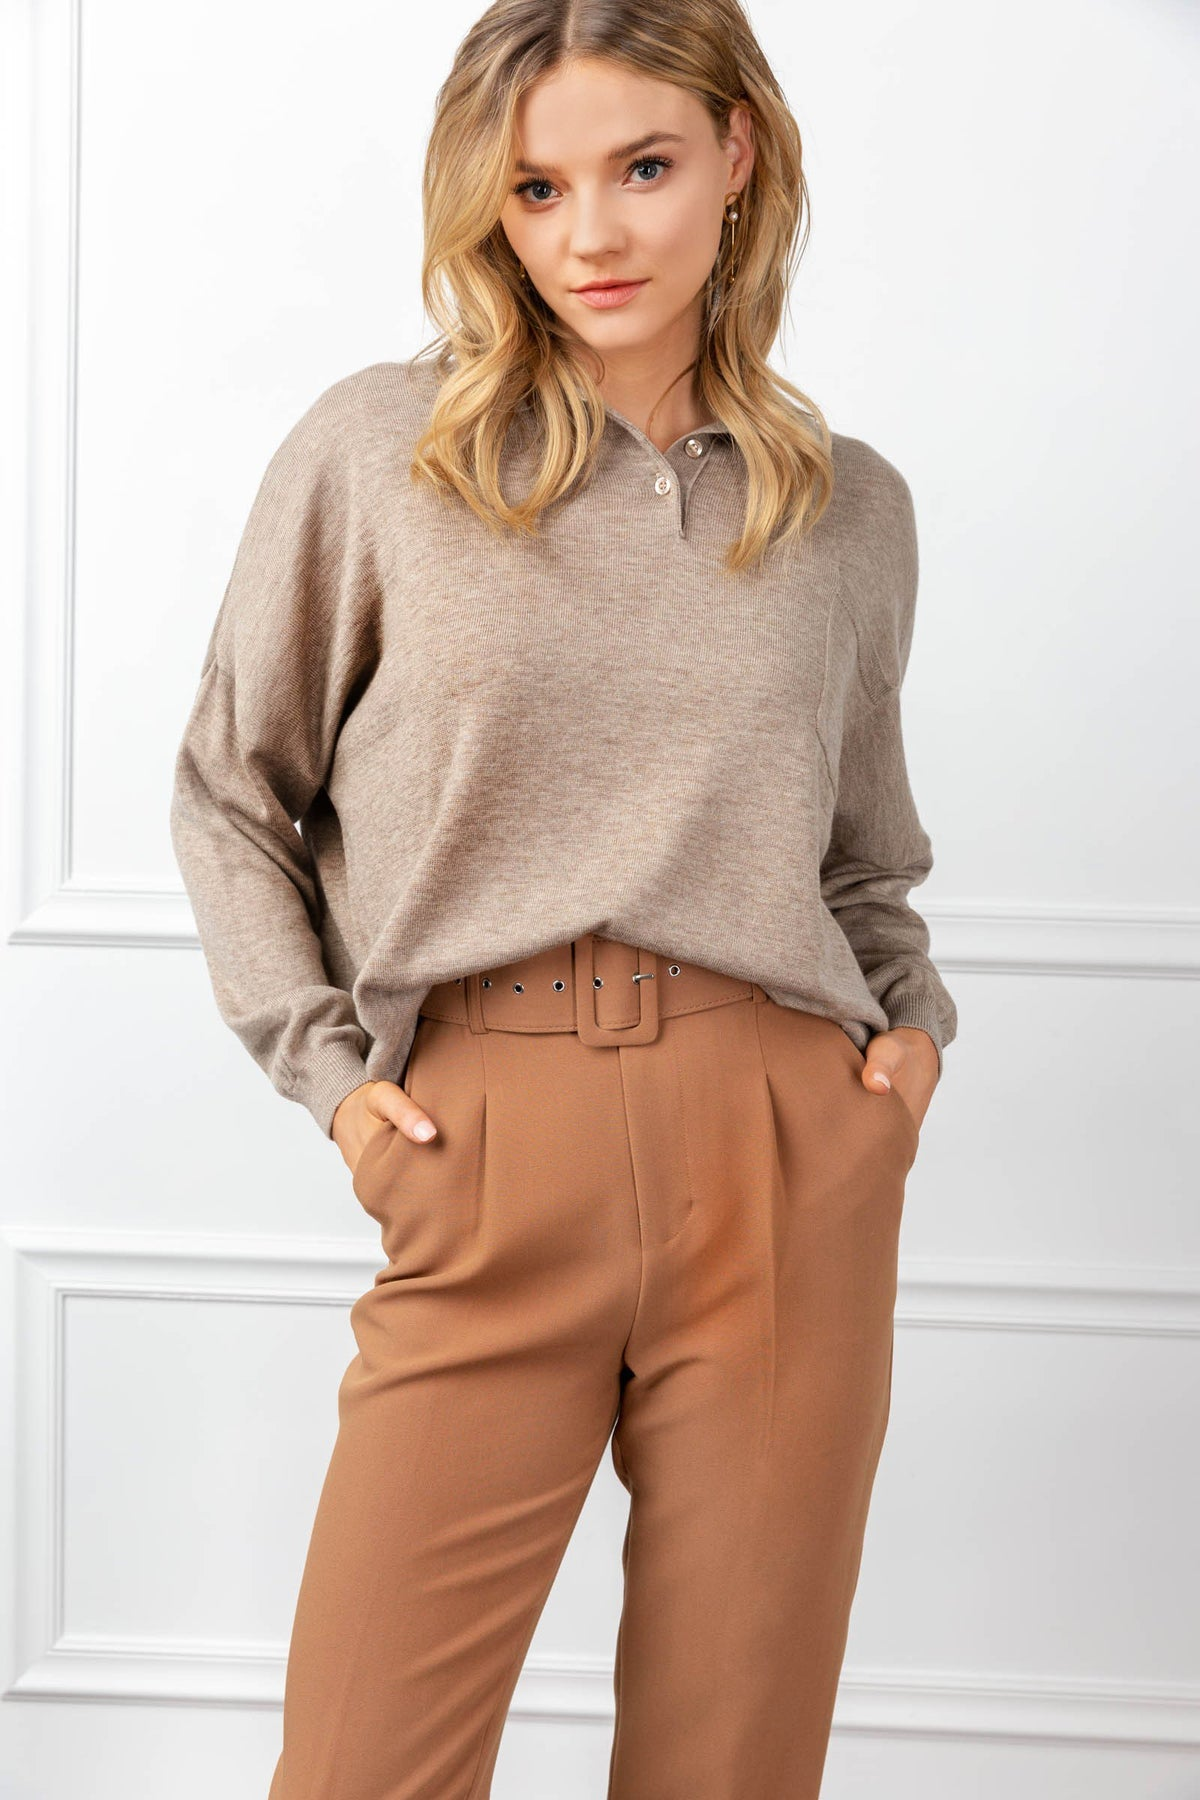 Odette Sweater Tan in Tops by J.ING - an L.A based women's fashion line